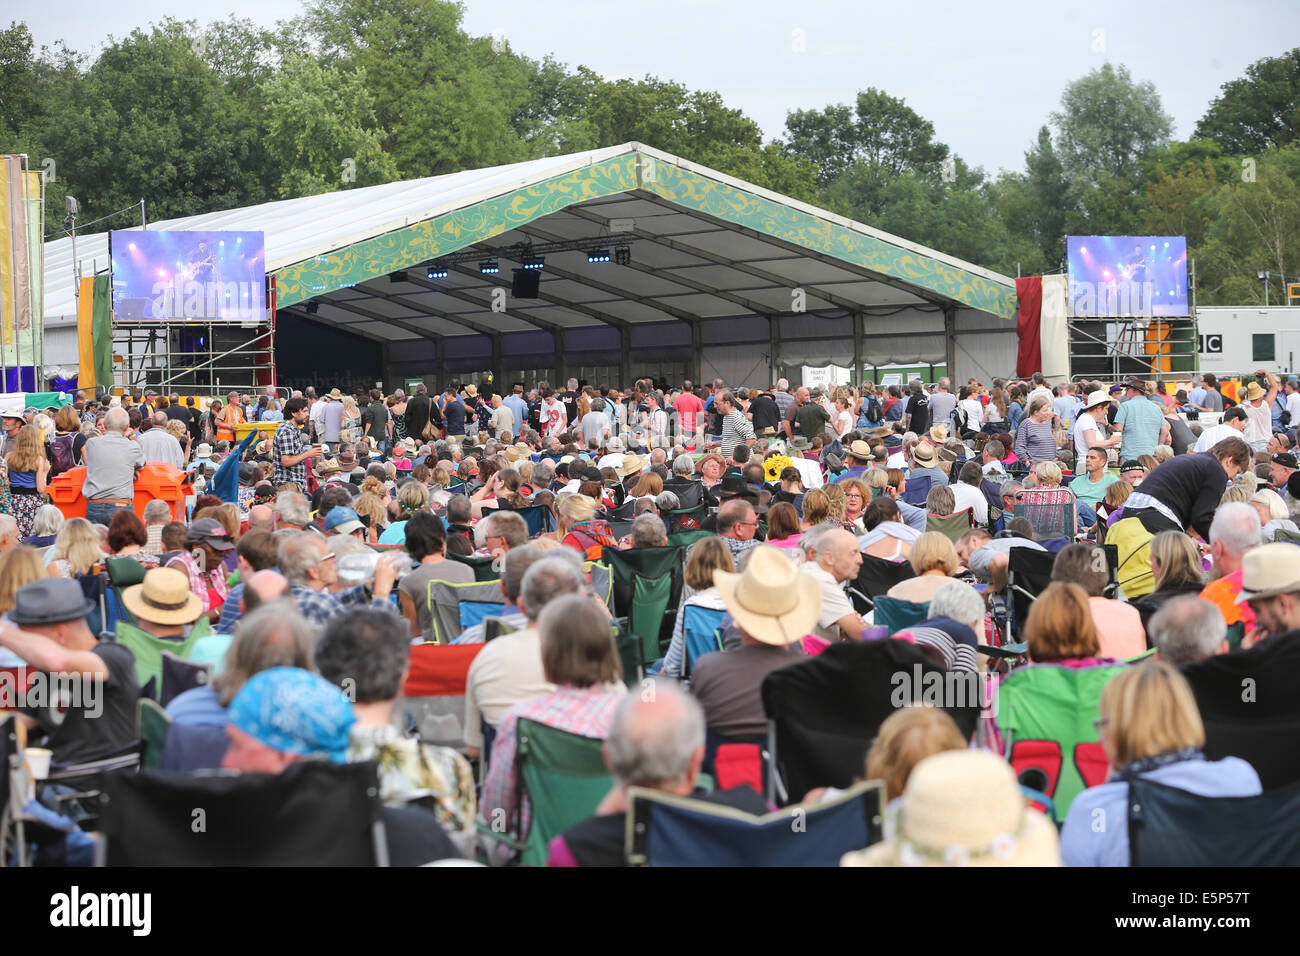 CAMBRIDGE FOLK FESTIVAL CROWD AND STAGE - Stock Image